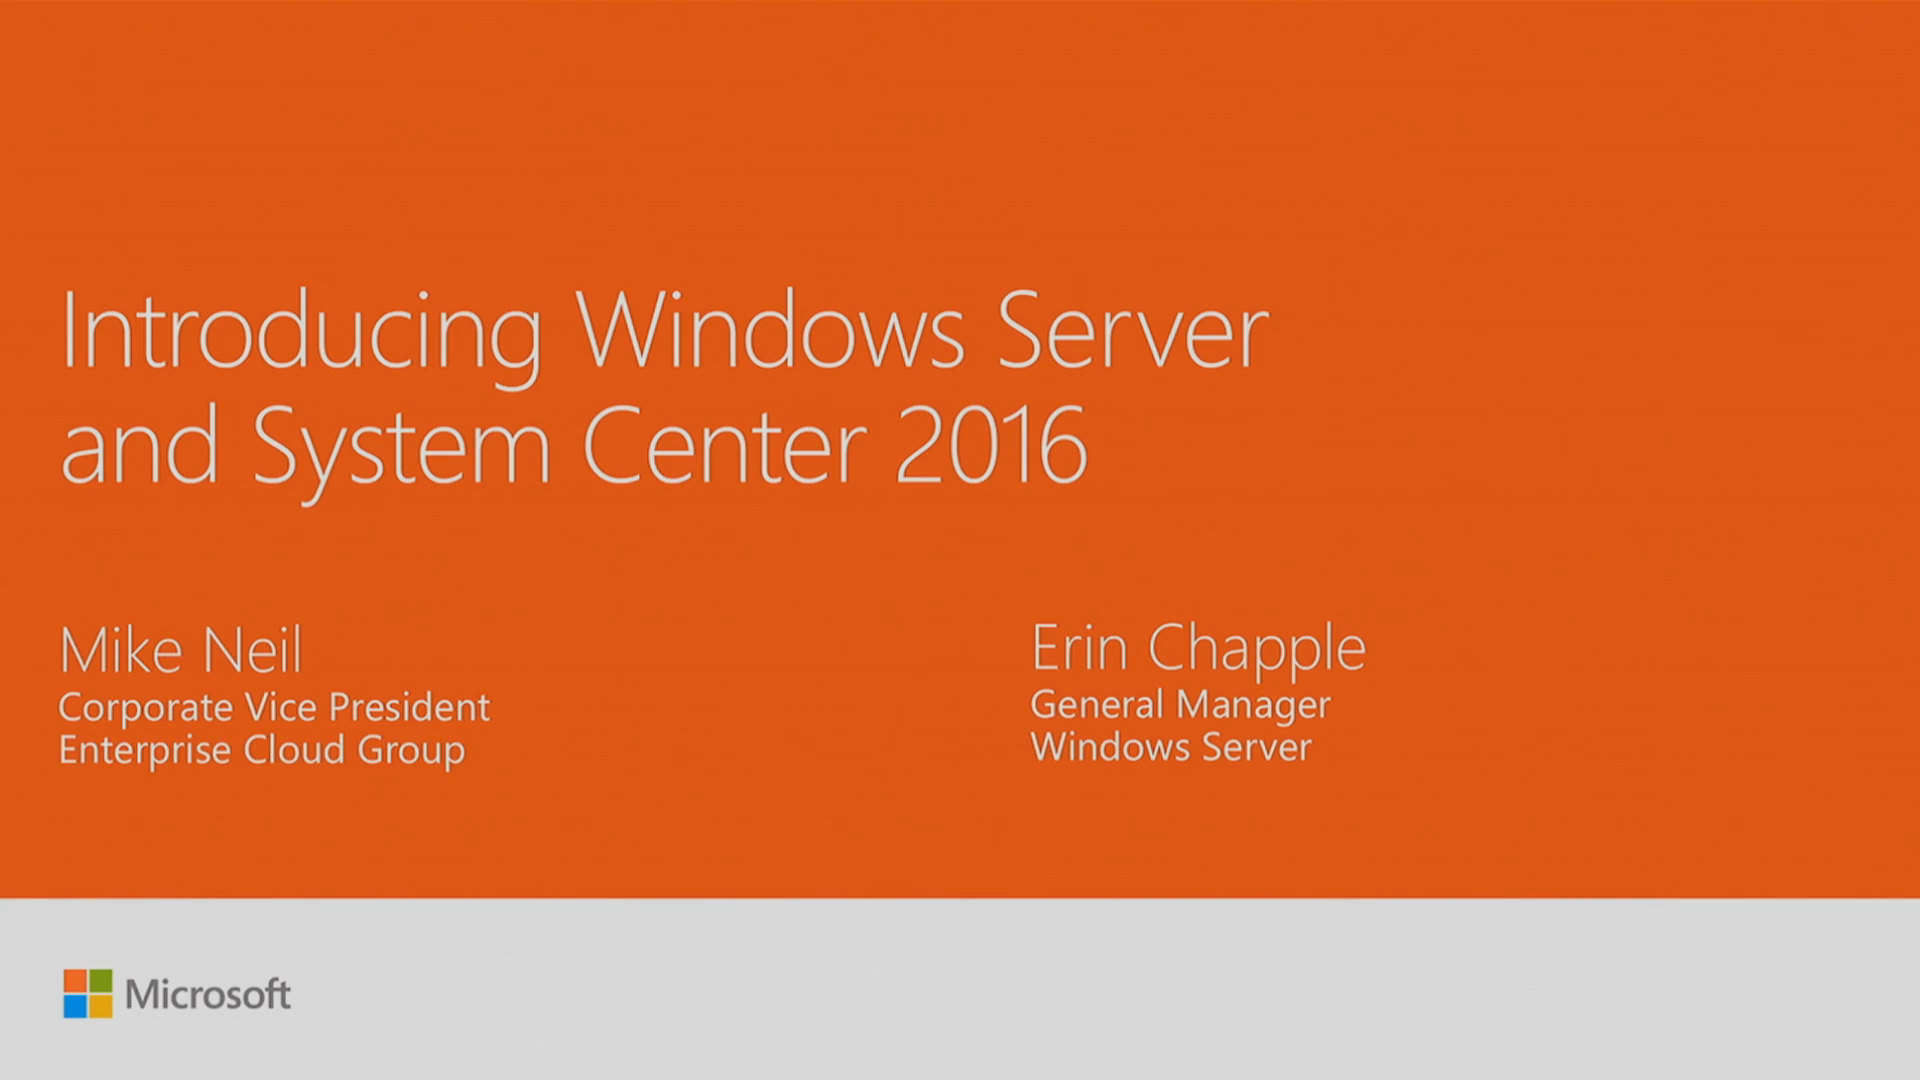 Ignite 2016 – Introducing Windows Server and System Center 2016